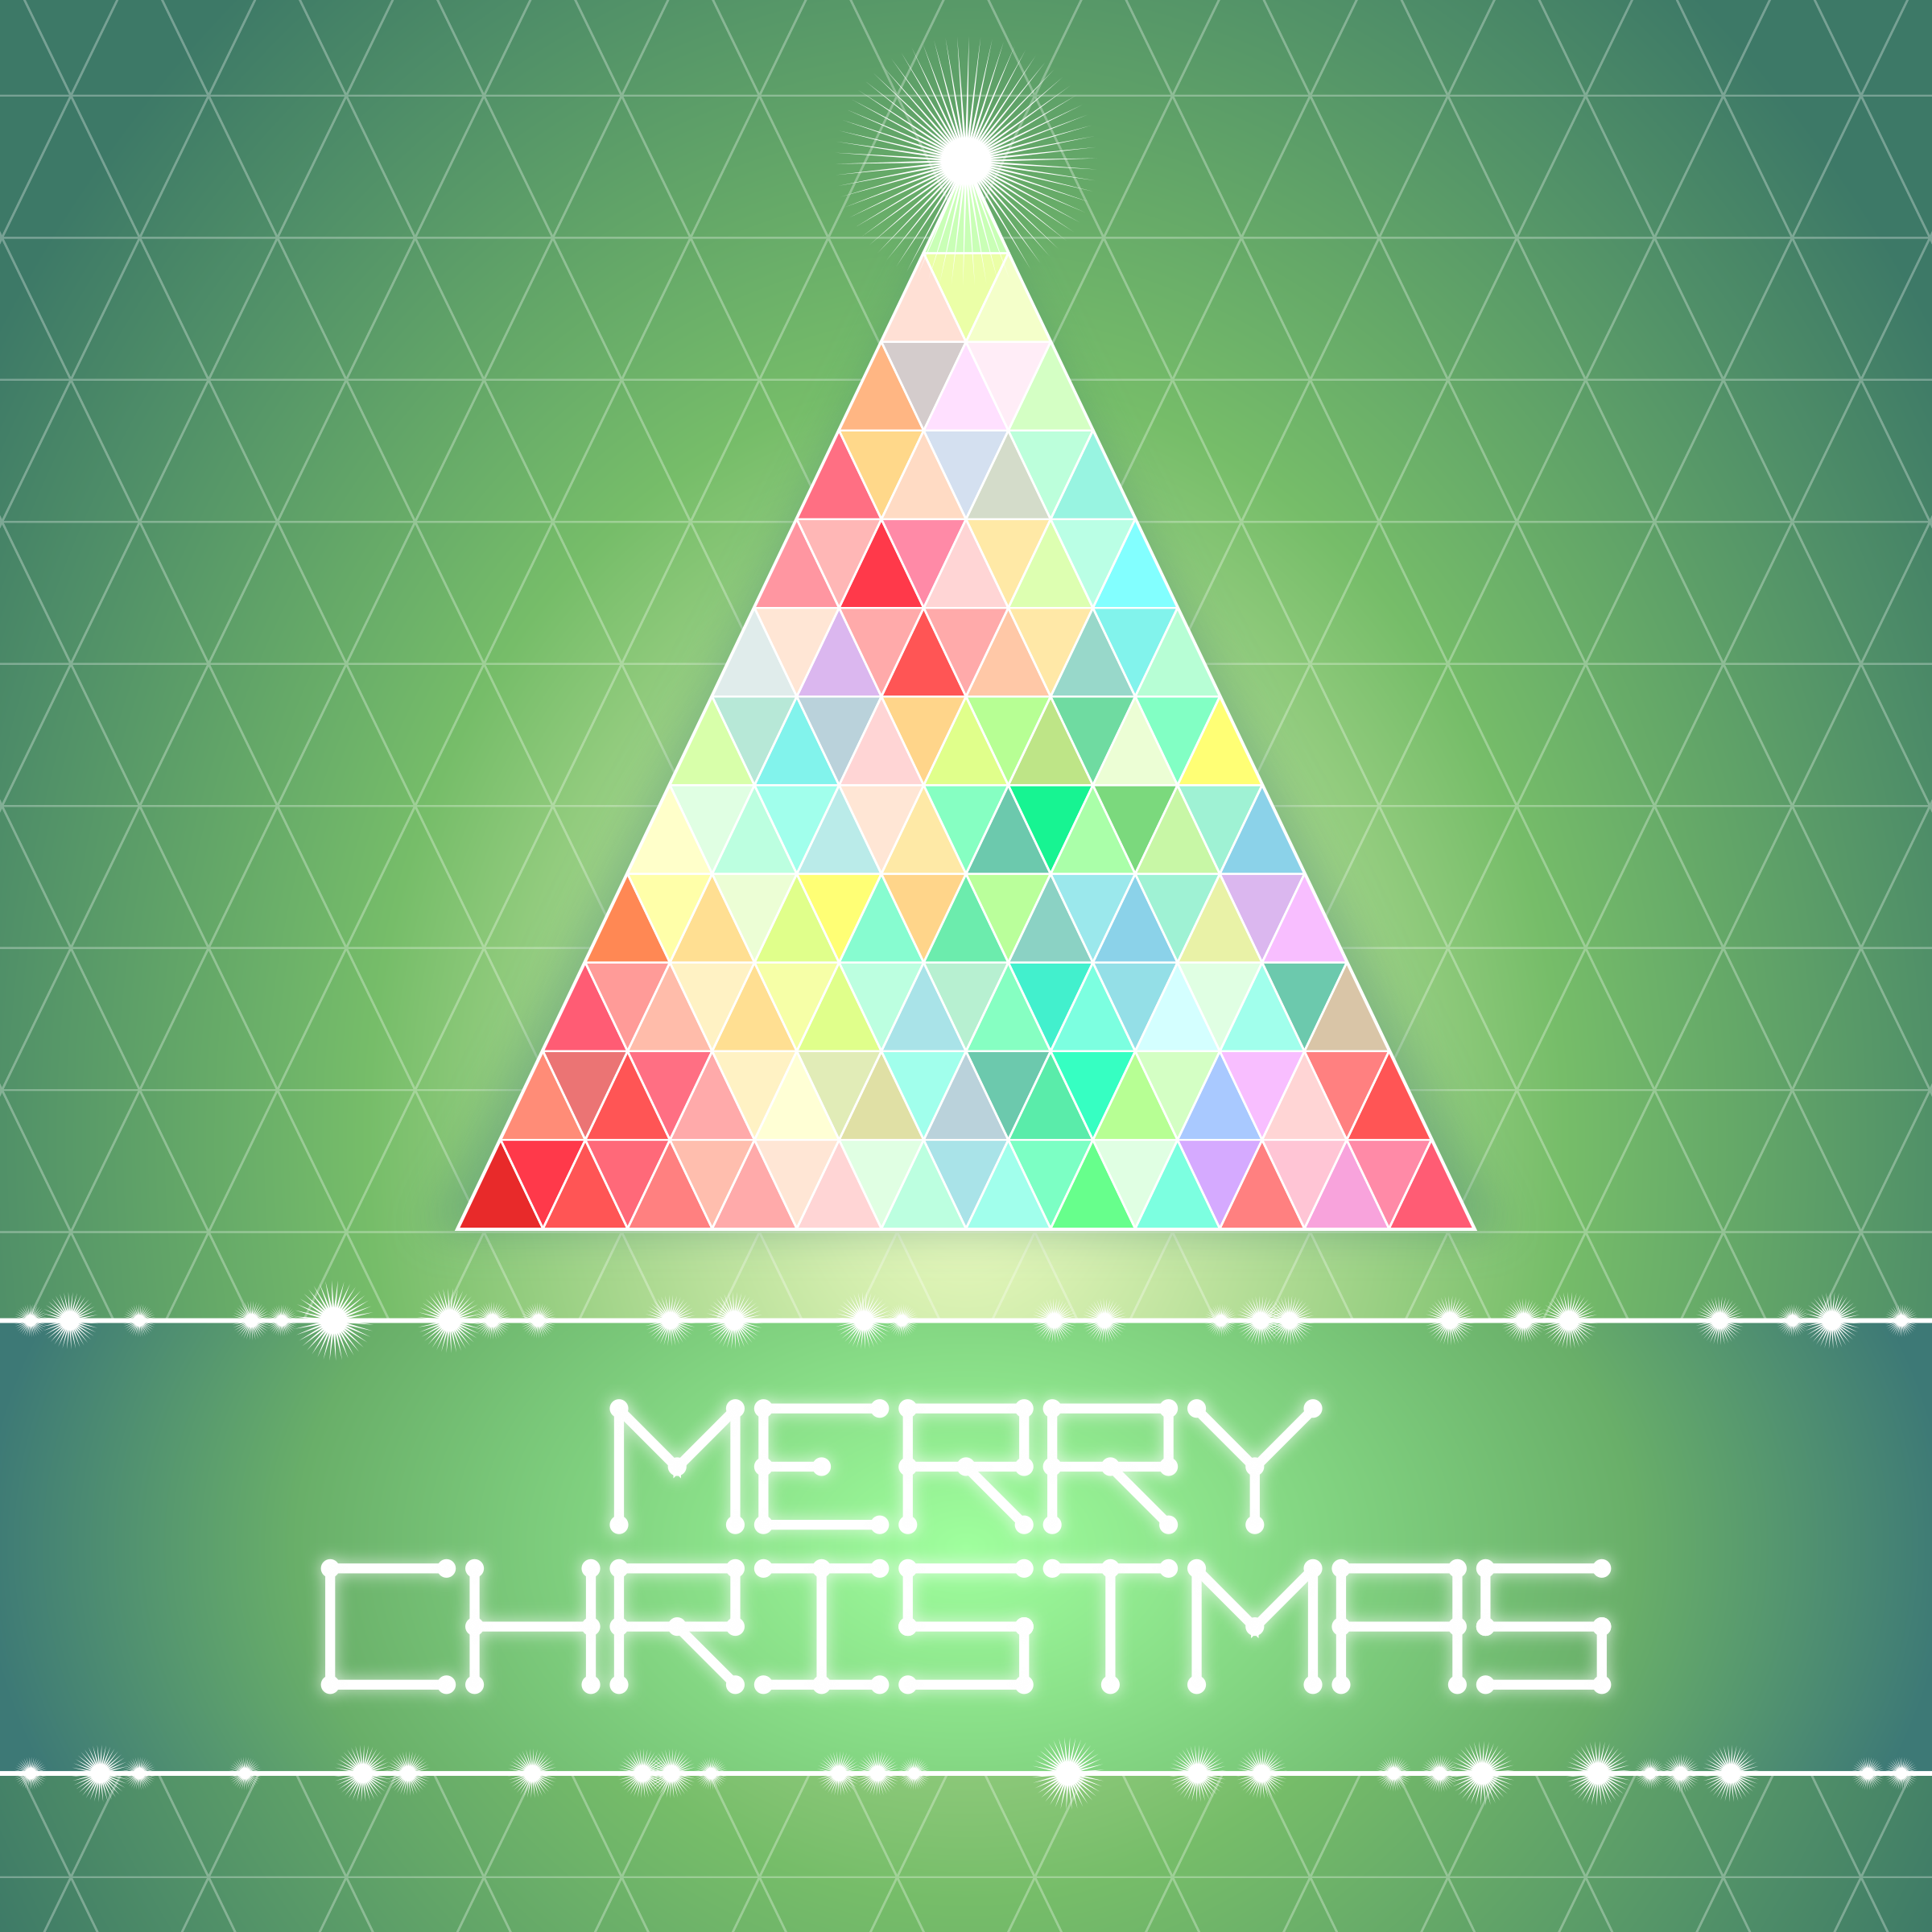 Merry Chrismas Card by Viscious-Speed